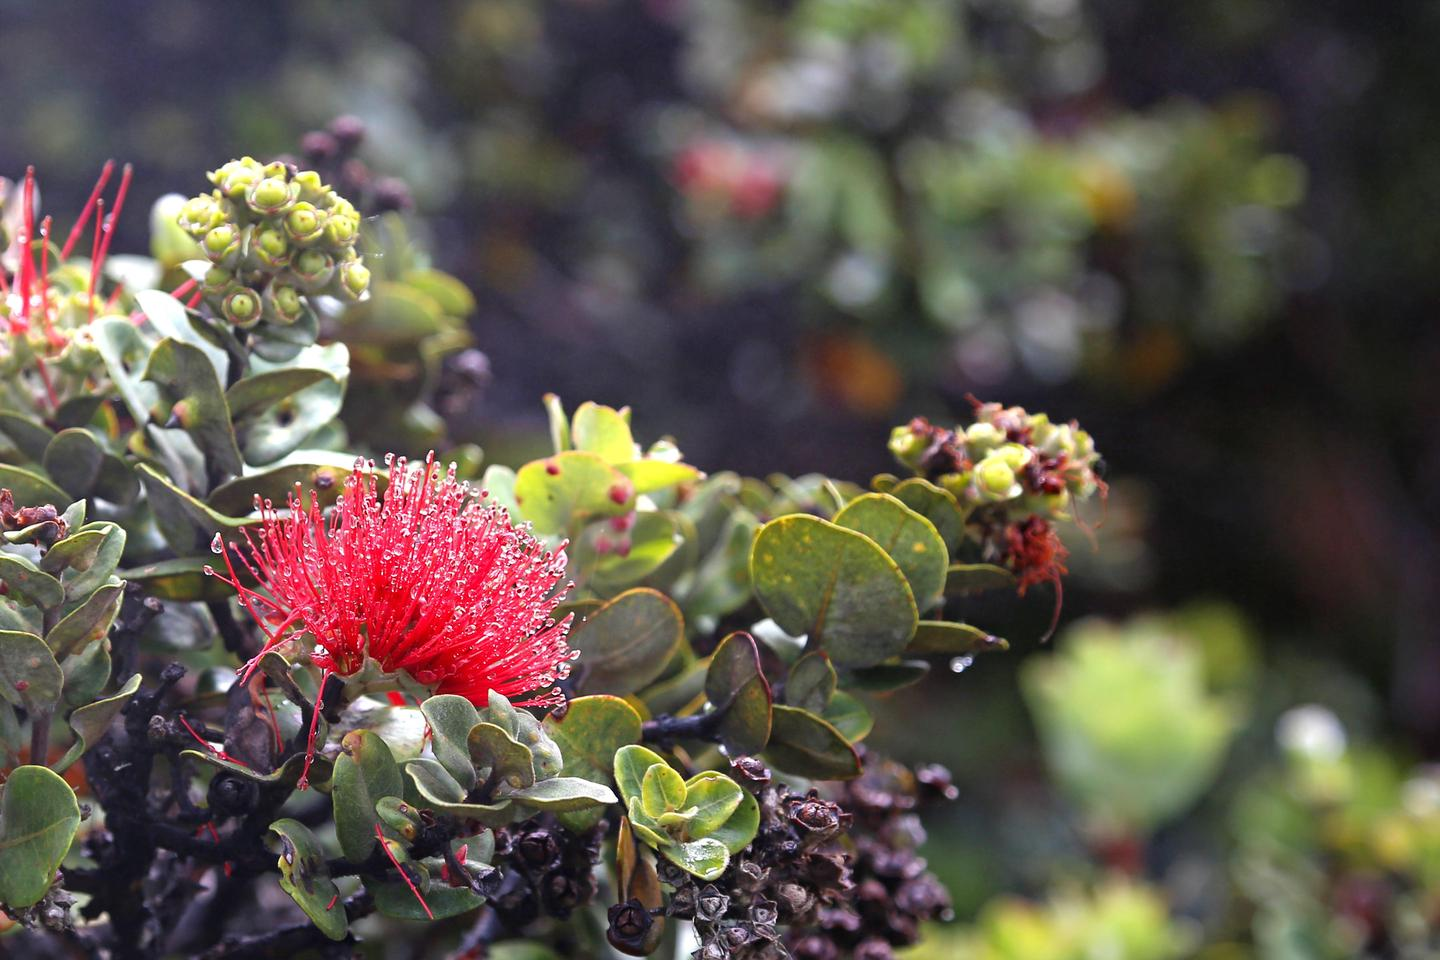 ʻŌhiʻaThe red blossoms of the ʻōhiʻa are a Hawaiian cultural icon